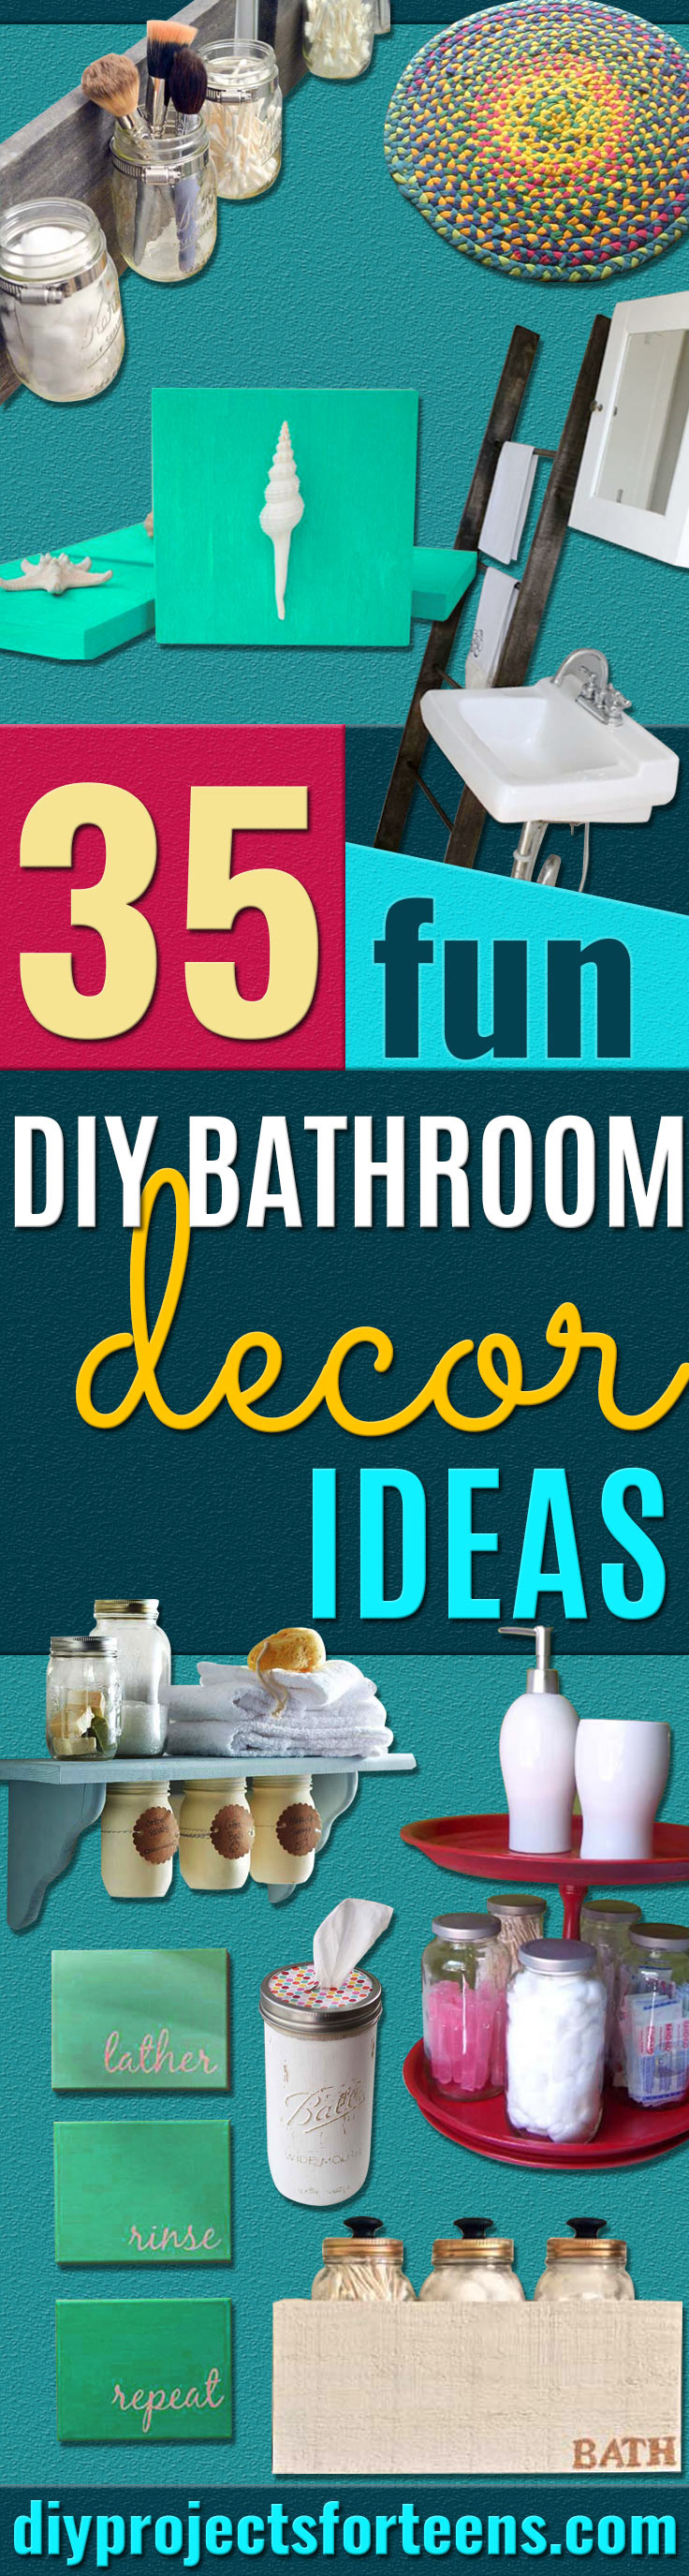 DIY Bathroom Decor Ideas for Teens - Best Creative, Cool Bath Decorations and Accessories for Teenagers - Easy, Cheap, Cute and Quick Craft Projects That Are Fun To Make. Easy to Follow Step by Step Tutorials http://diyprojectsforteens.com/diy-bathroom-decor-teens